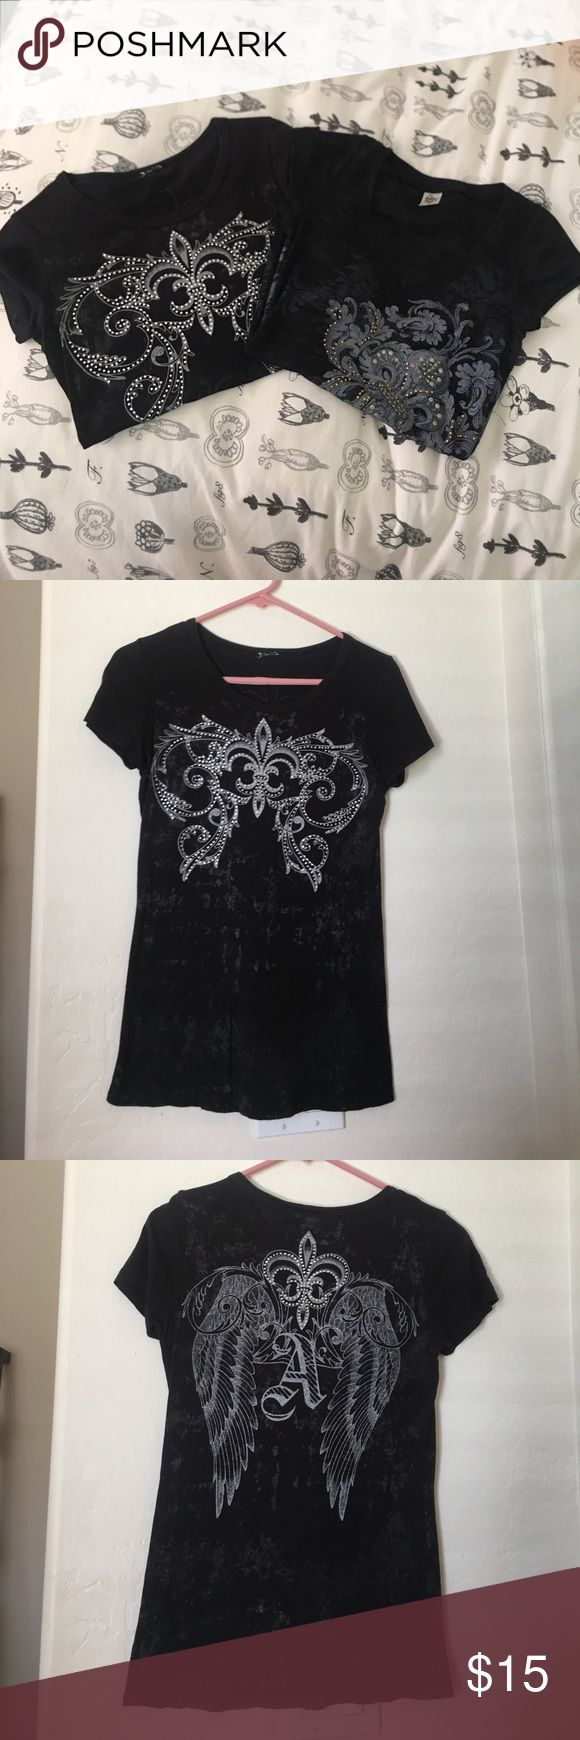 Black Bling Shirt Bundle! Worn but still in great shape! Both size Small! Open to all offers :) Tops Tees - Short Sleeve